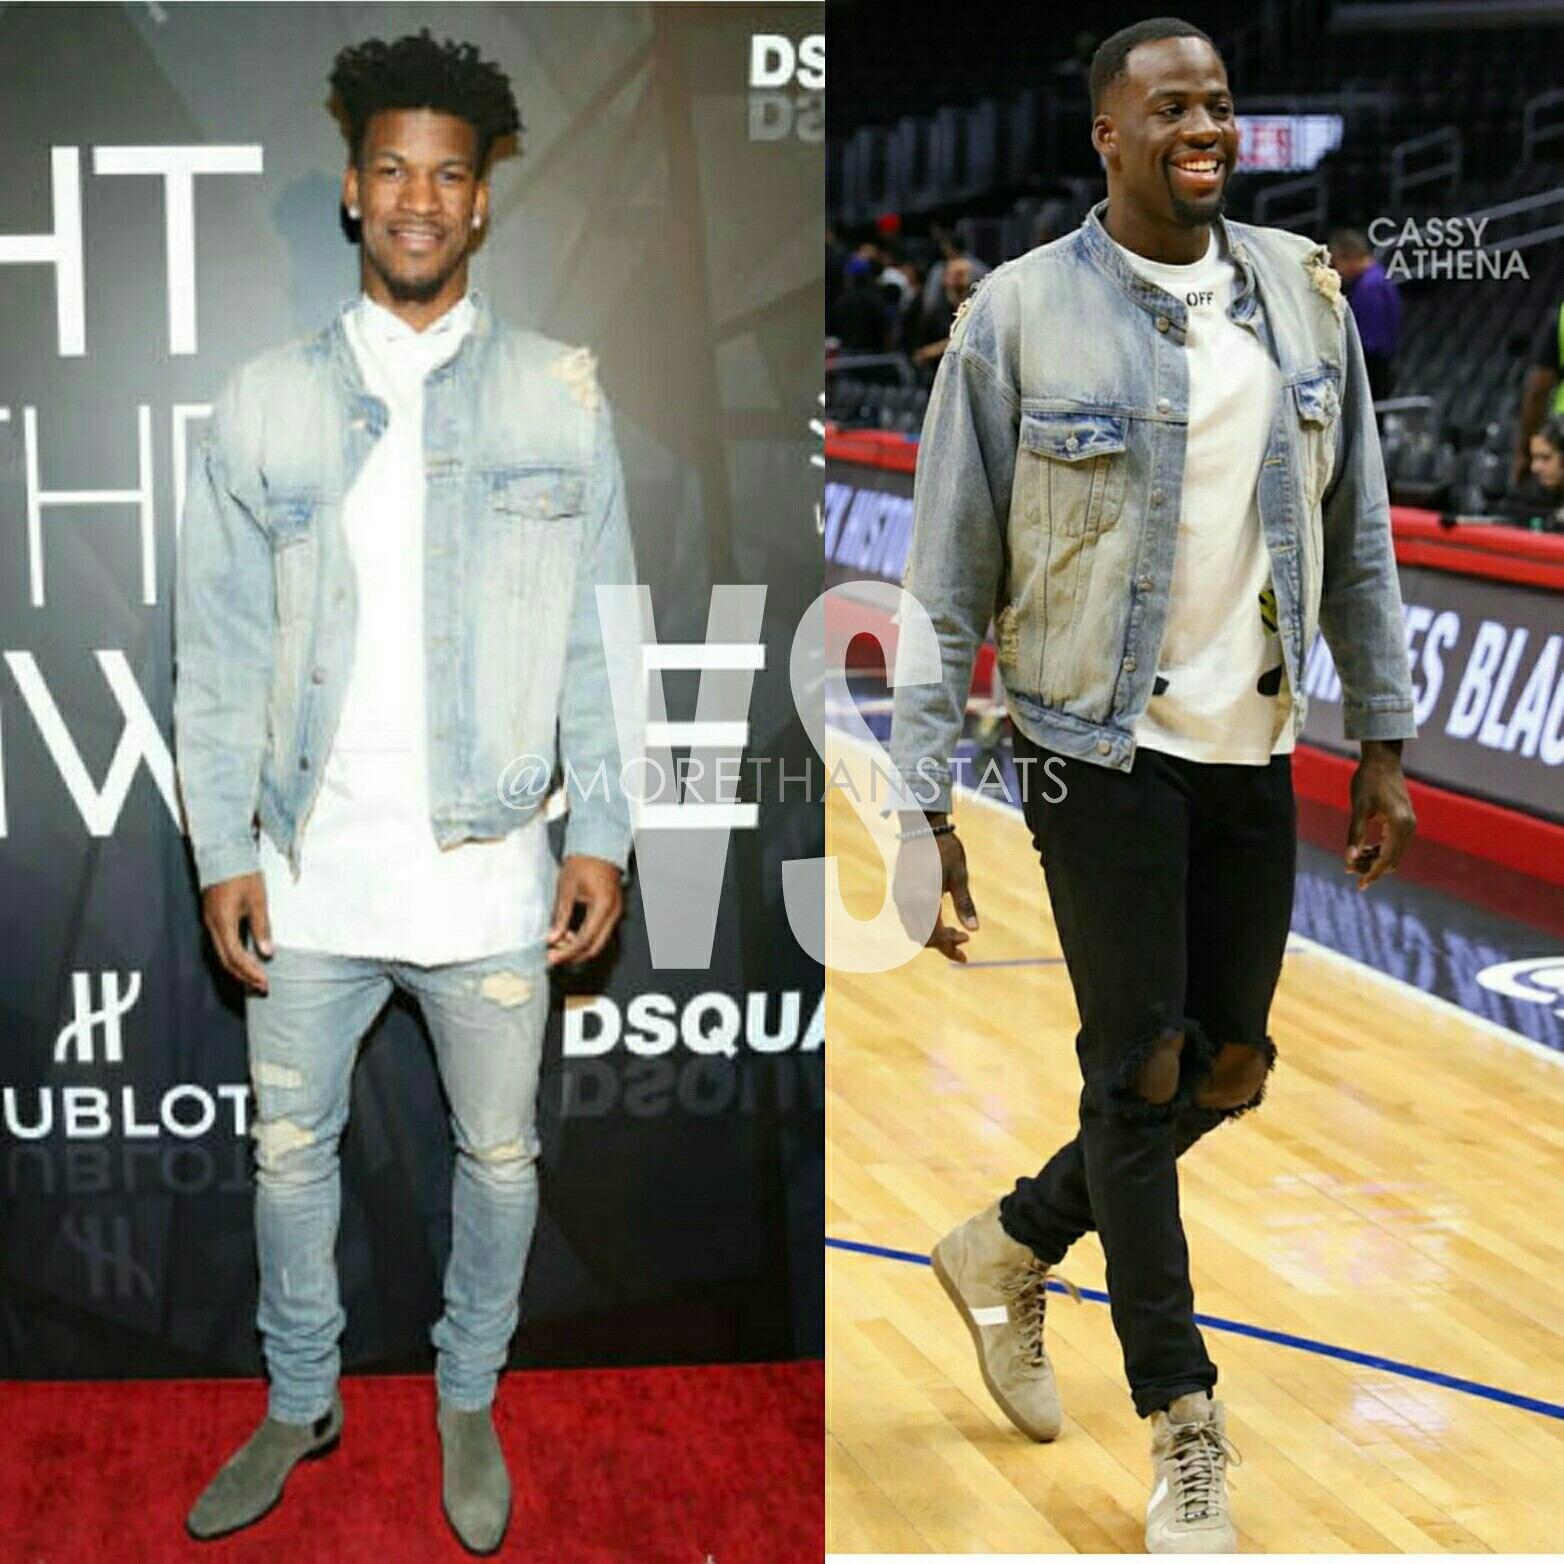 Jimmy Butler VS Draymond Green Wearing Daniel Patrick's Oversized Denim Fashion Jacket